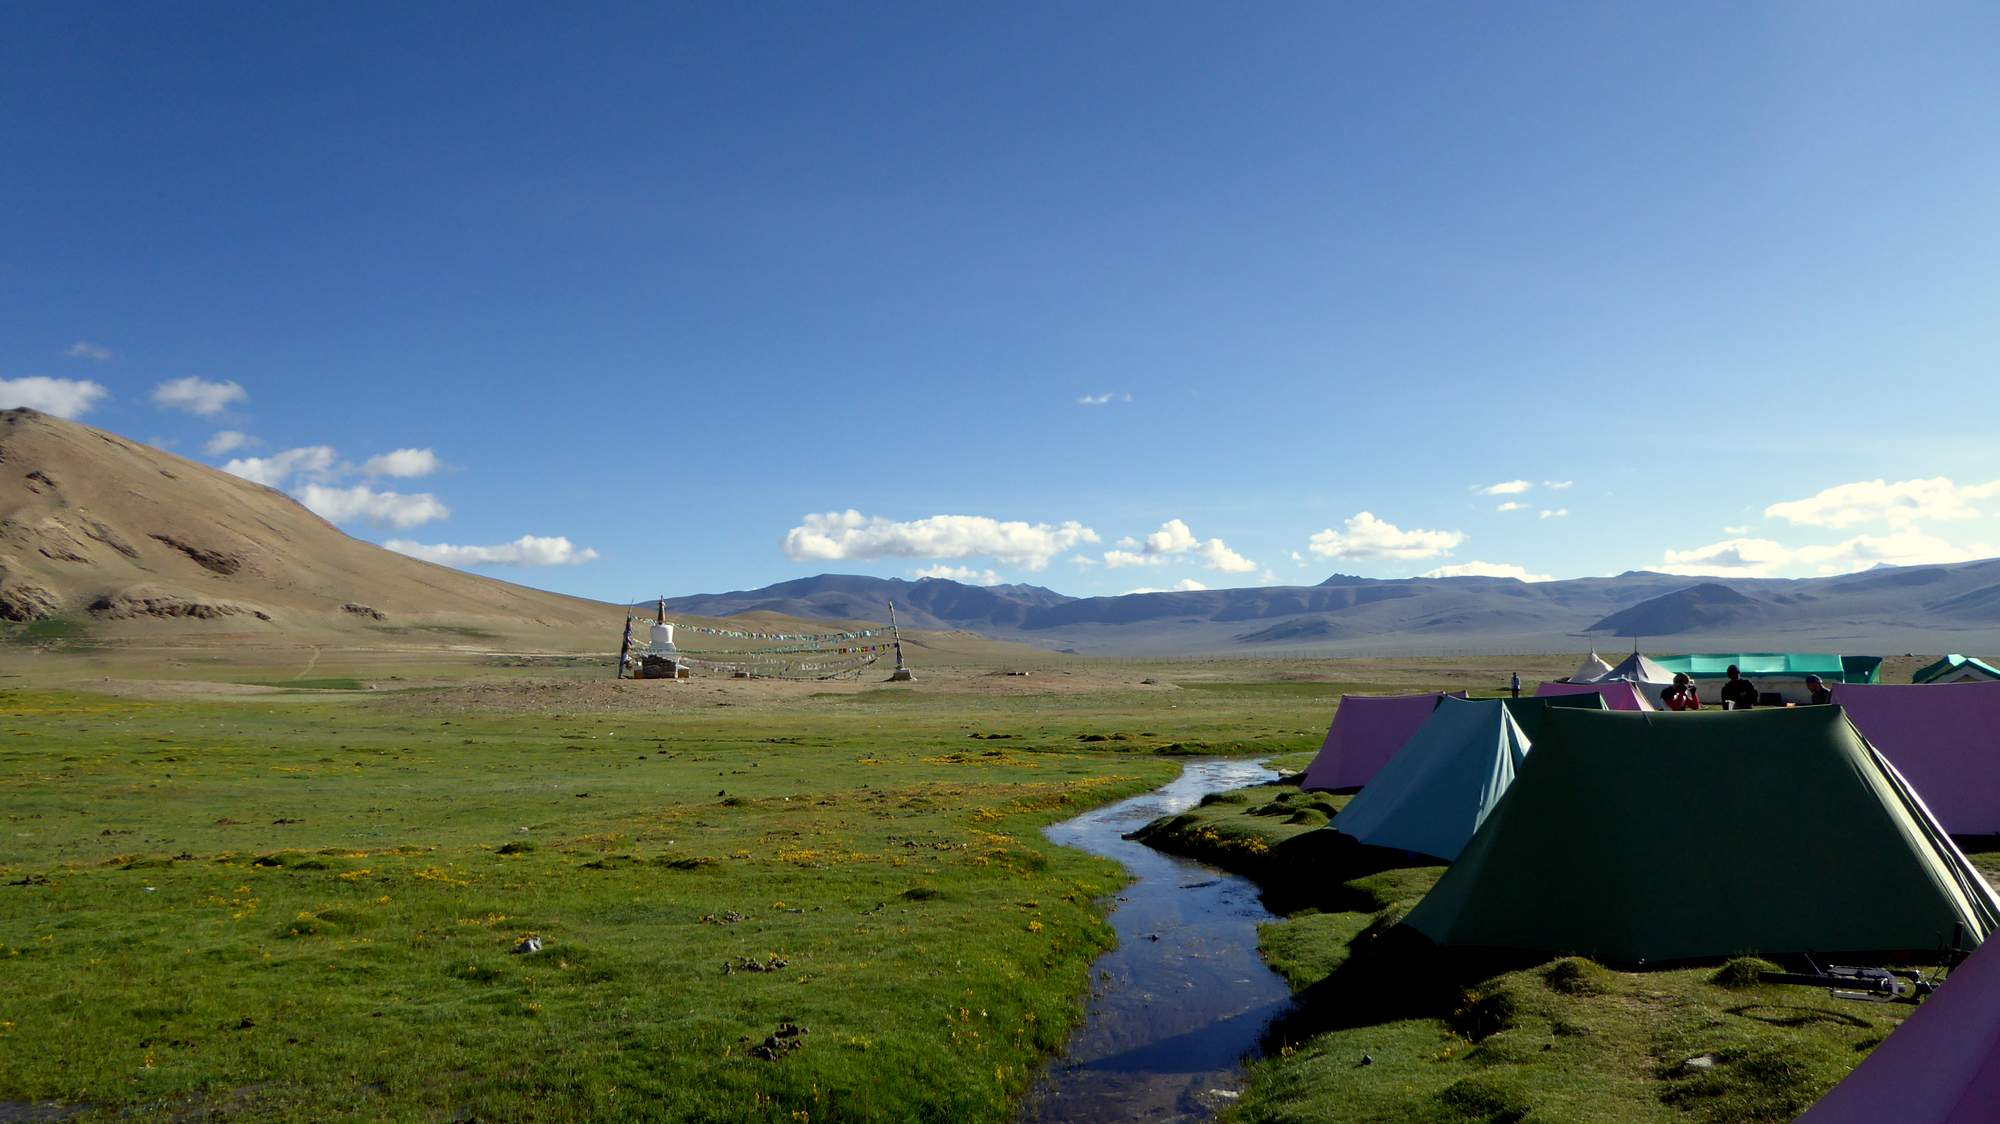 camping at altitude India himalaya